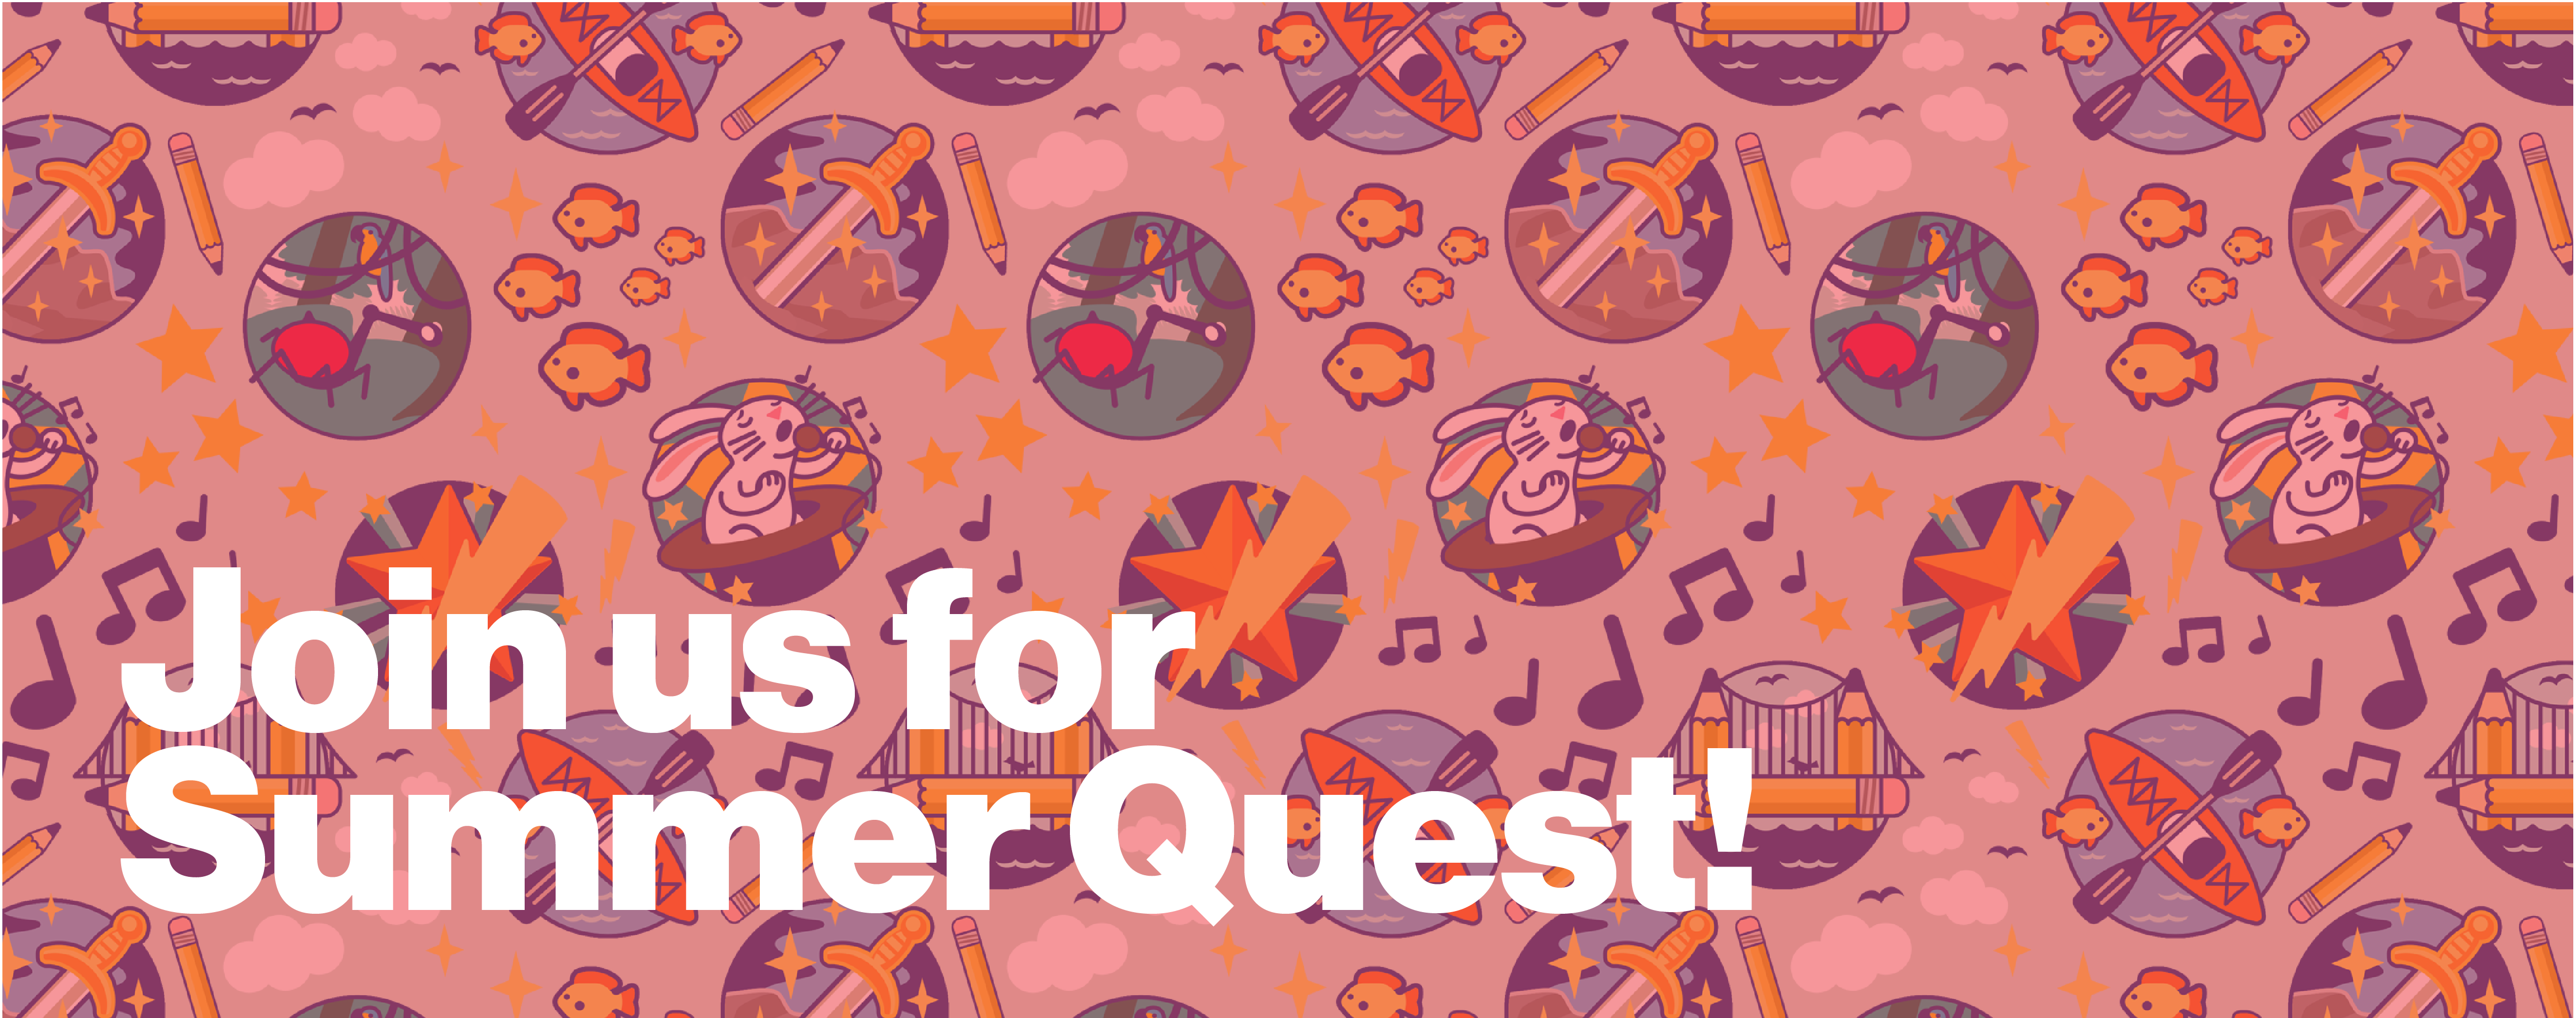 Join us for Summer Quest